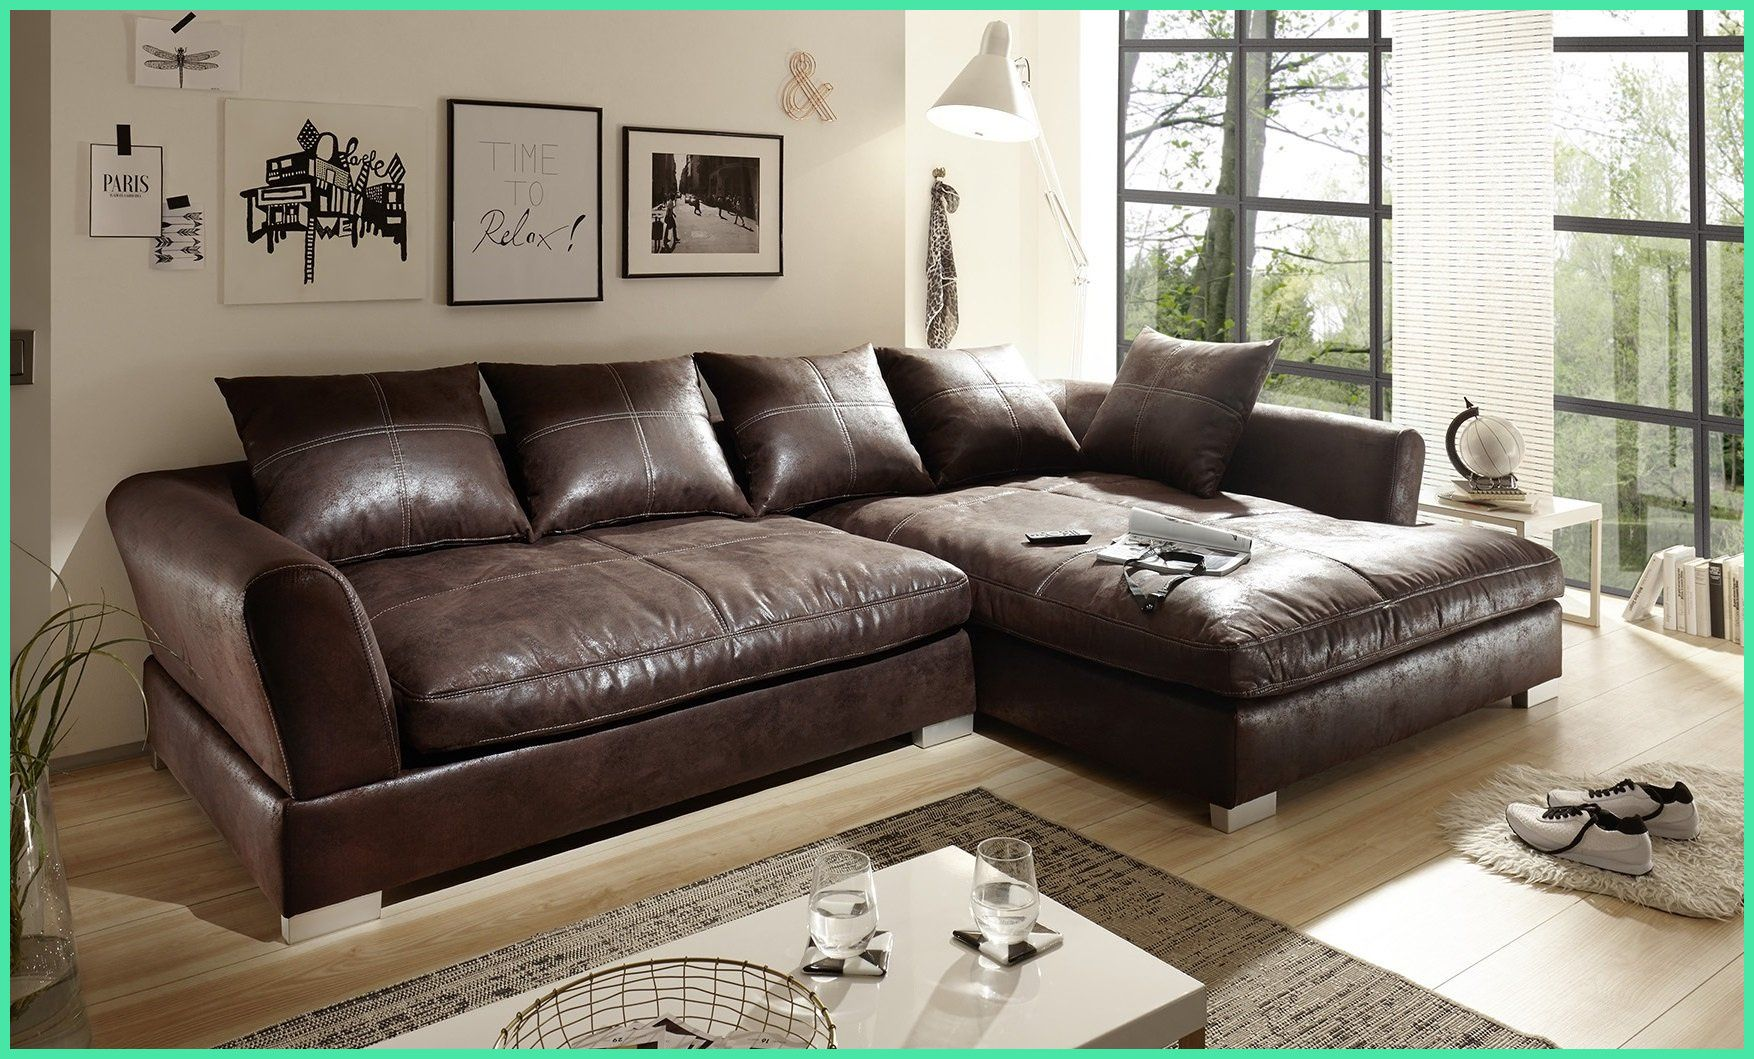 15 Anstandig Big Sofa Ecksofa Oversized Sectional Sofa Vintage Sofa Living Room Leather